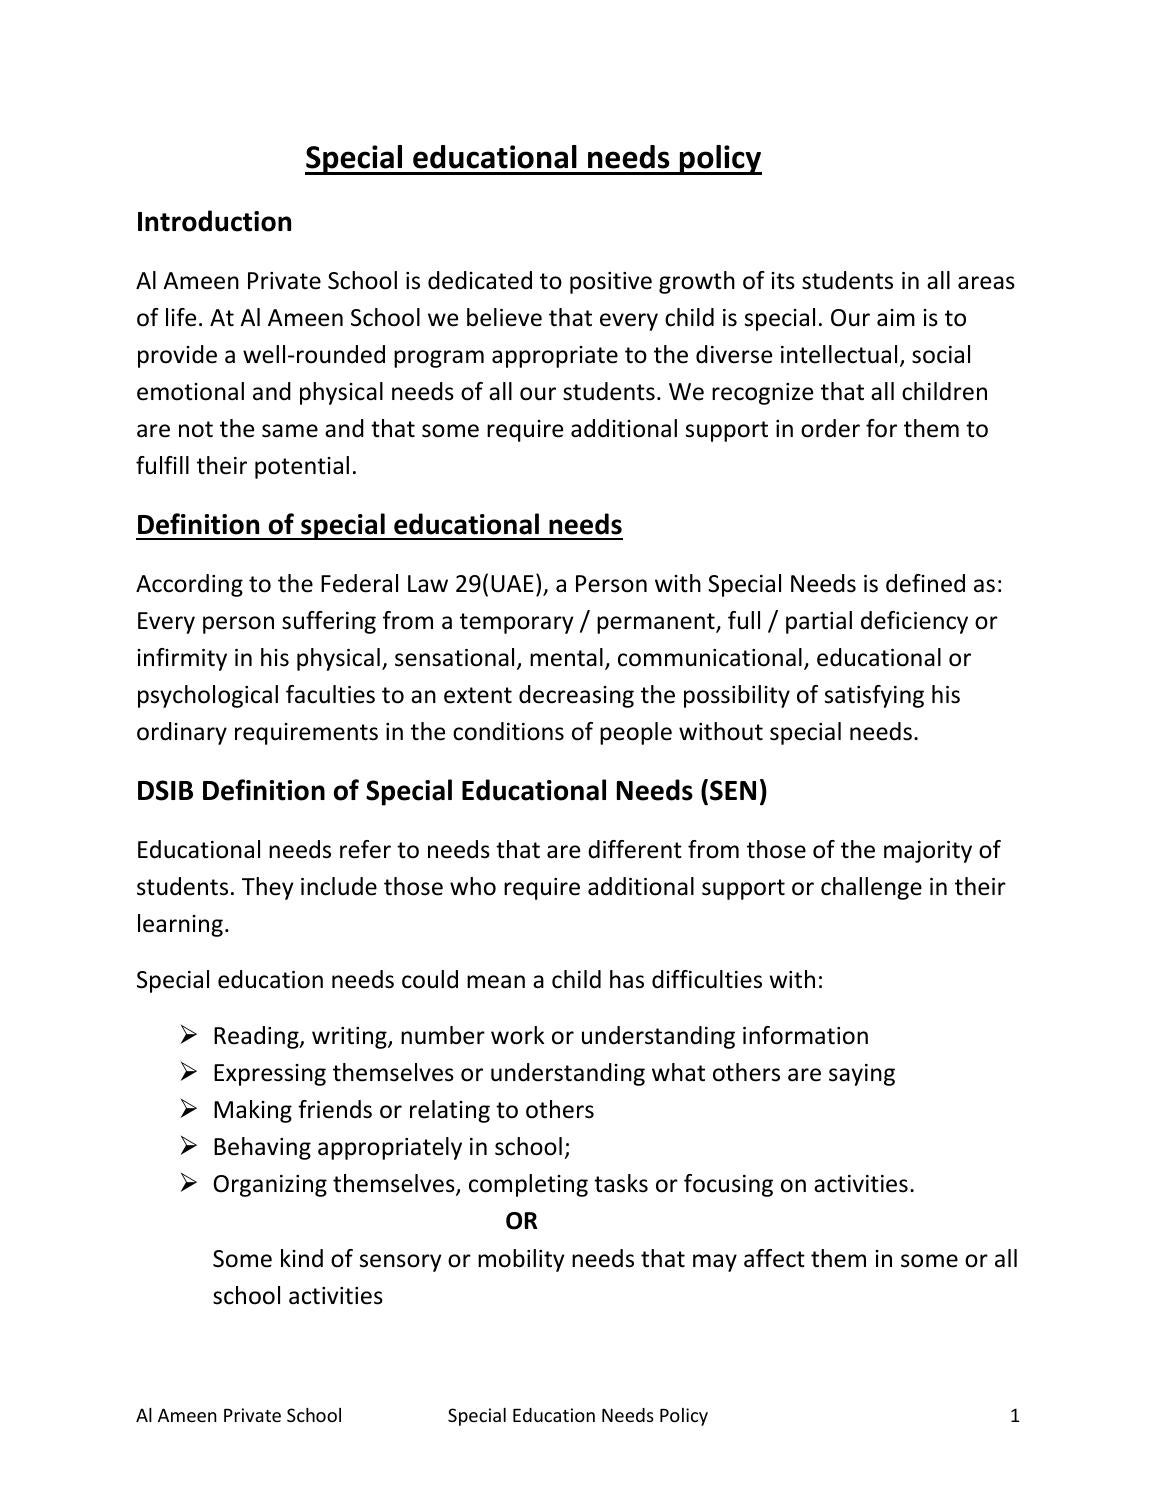 Special Education Definition | Examples and Forms